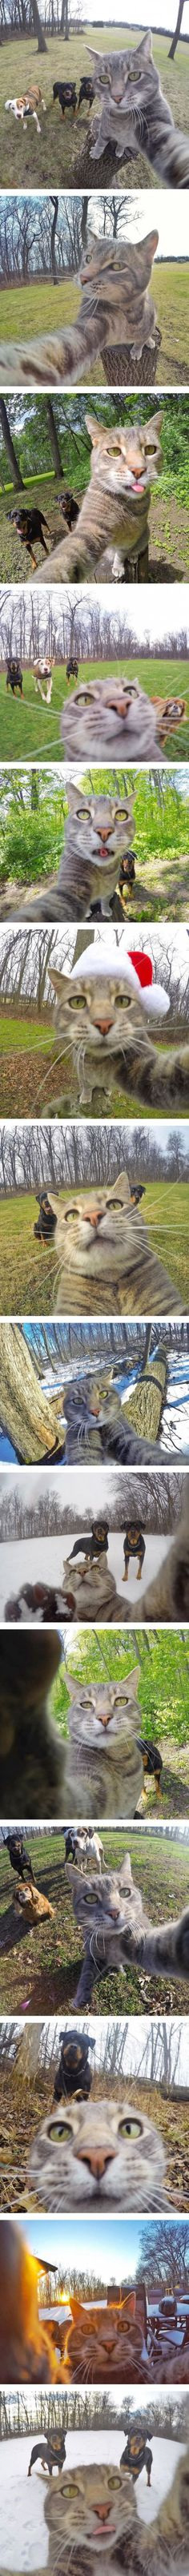 Why would manny be takin selfies when he is being chased by dogs???